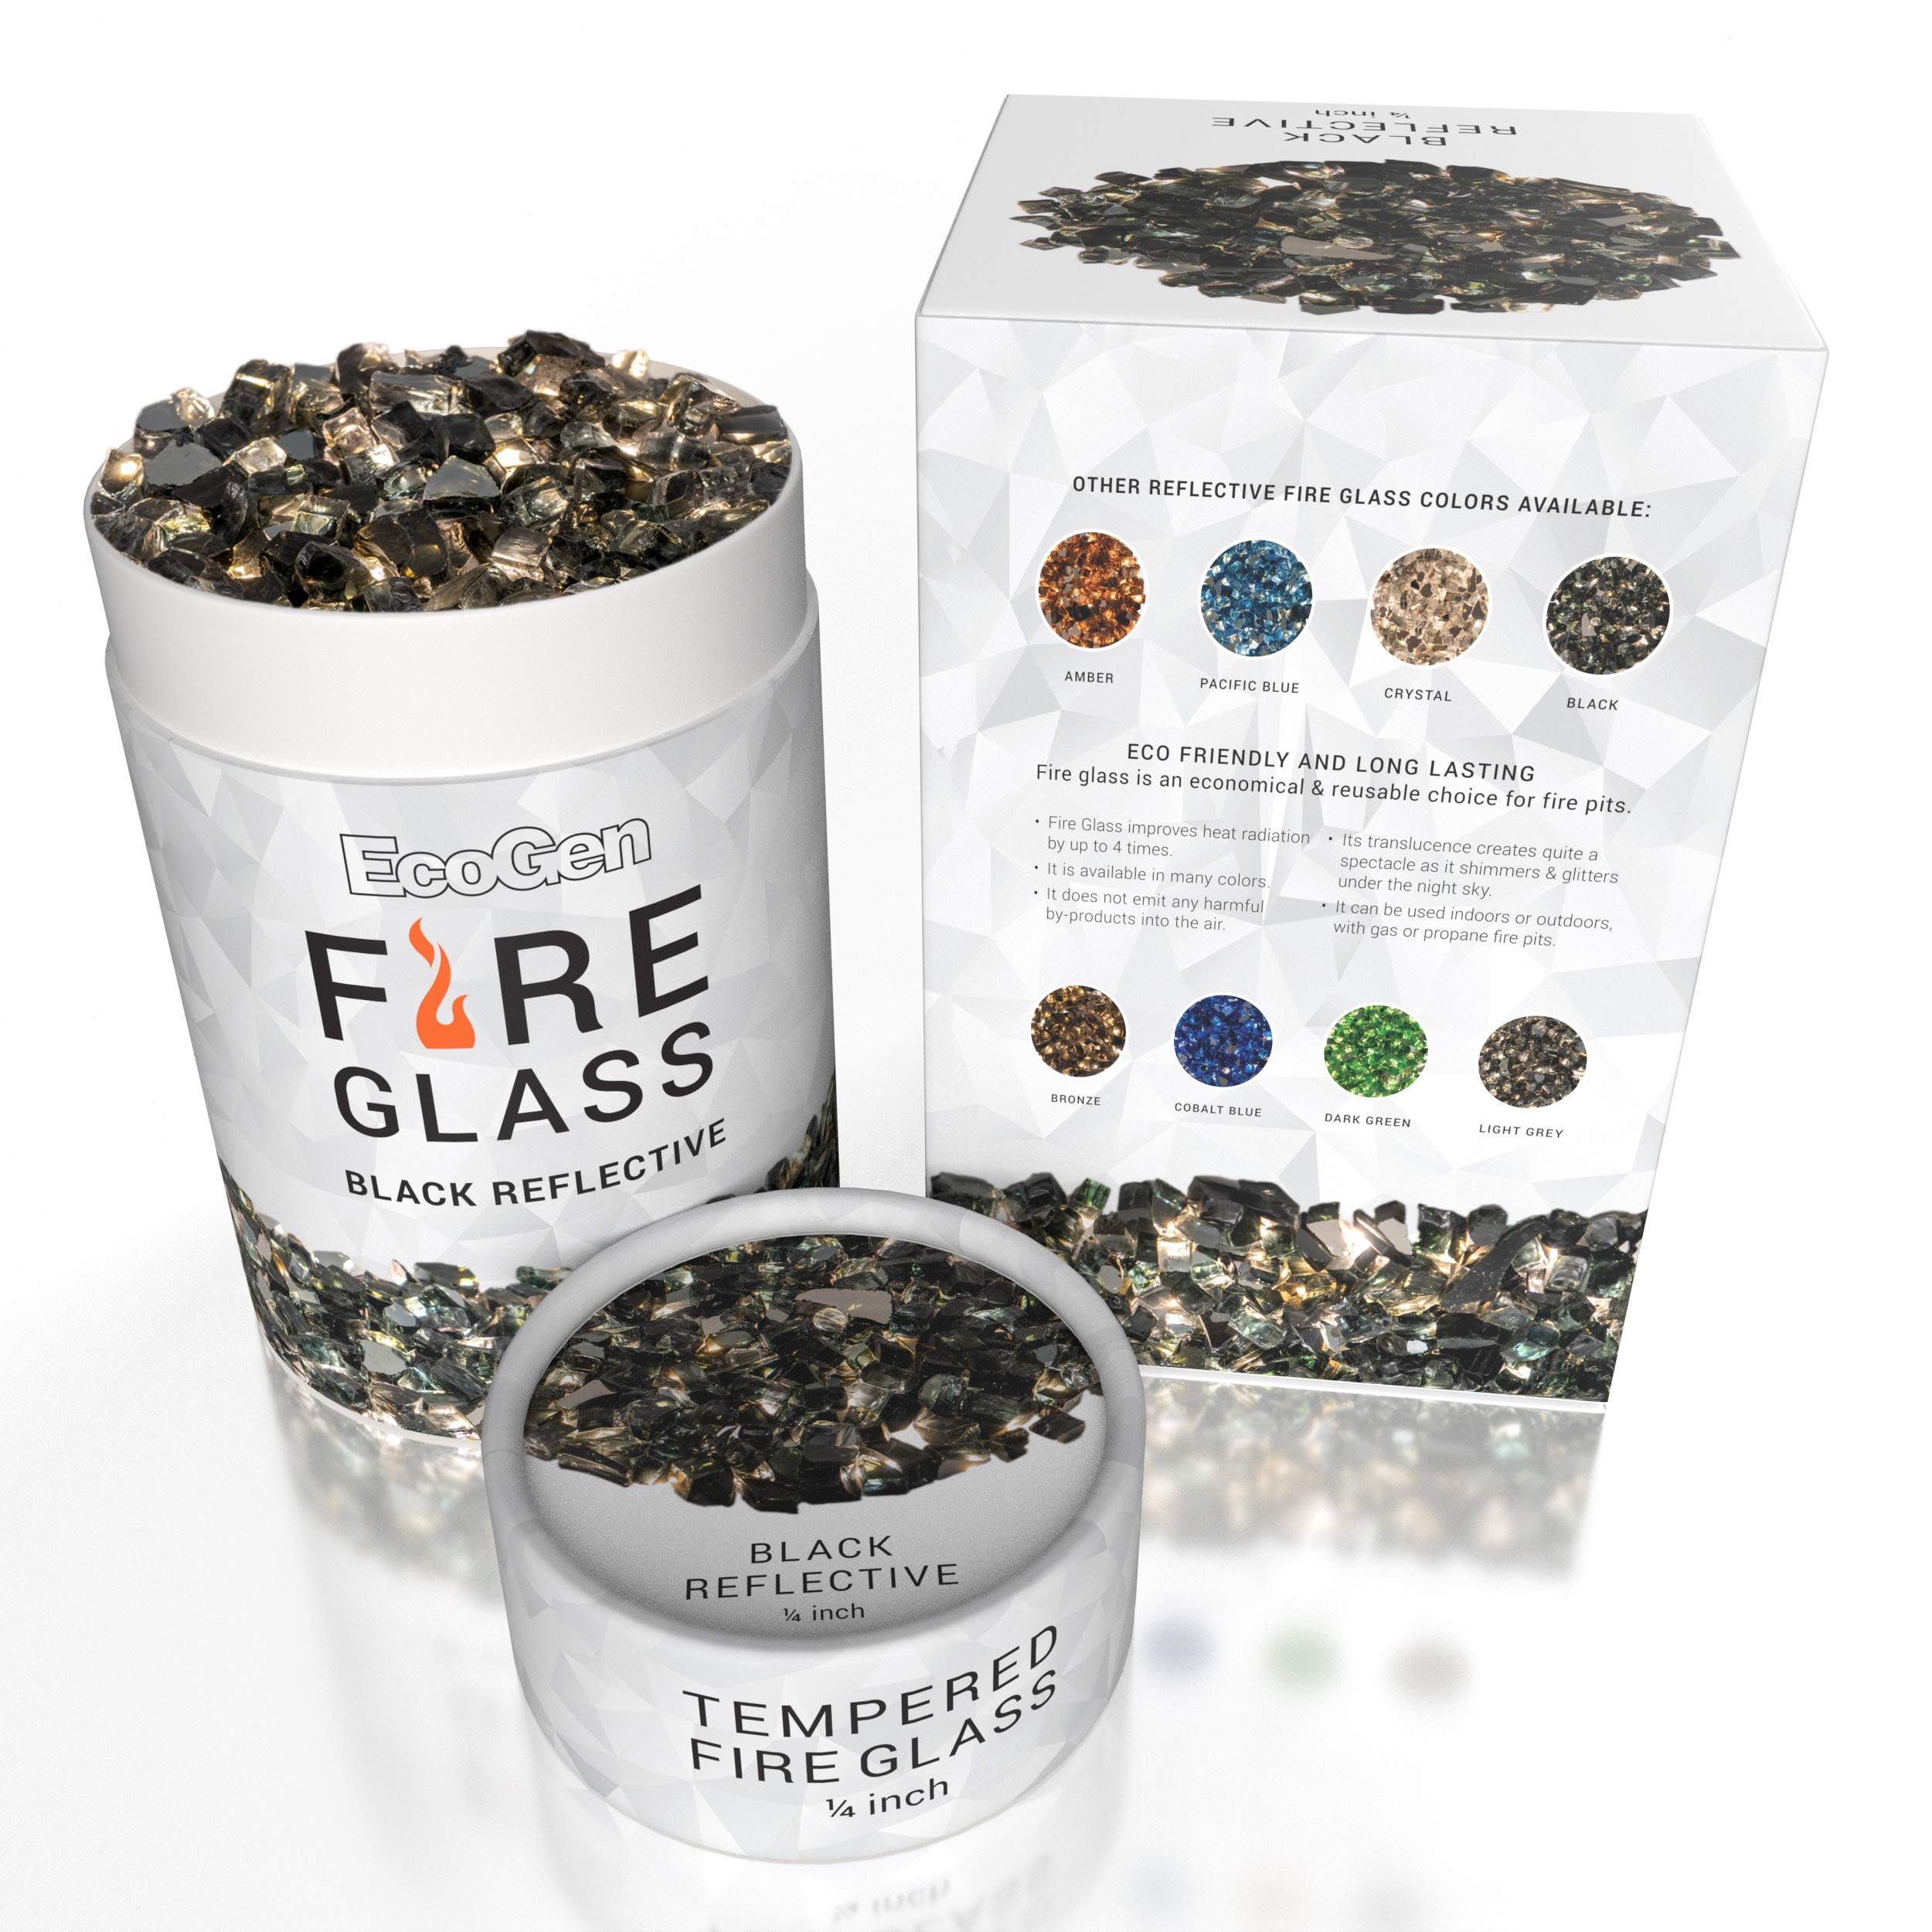 EcoGen Fire Glass Rocks for Outdoor Fire Pits and Indoor Fireplace, Color, Optimal Heat for Propane or Gas, Tempered and Reflective, Eco-Friendly Packaging, Black 1/4 inch Reflective 12 lbs.